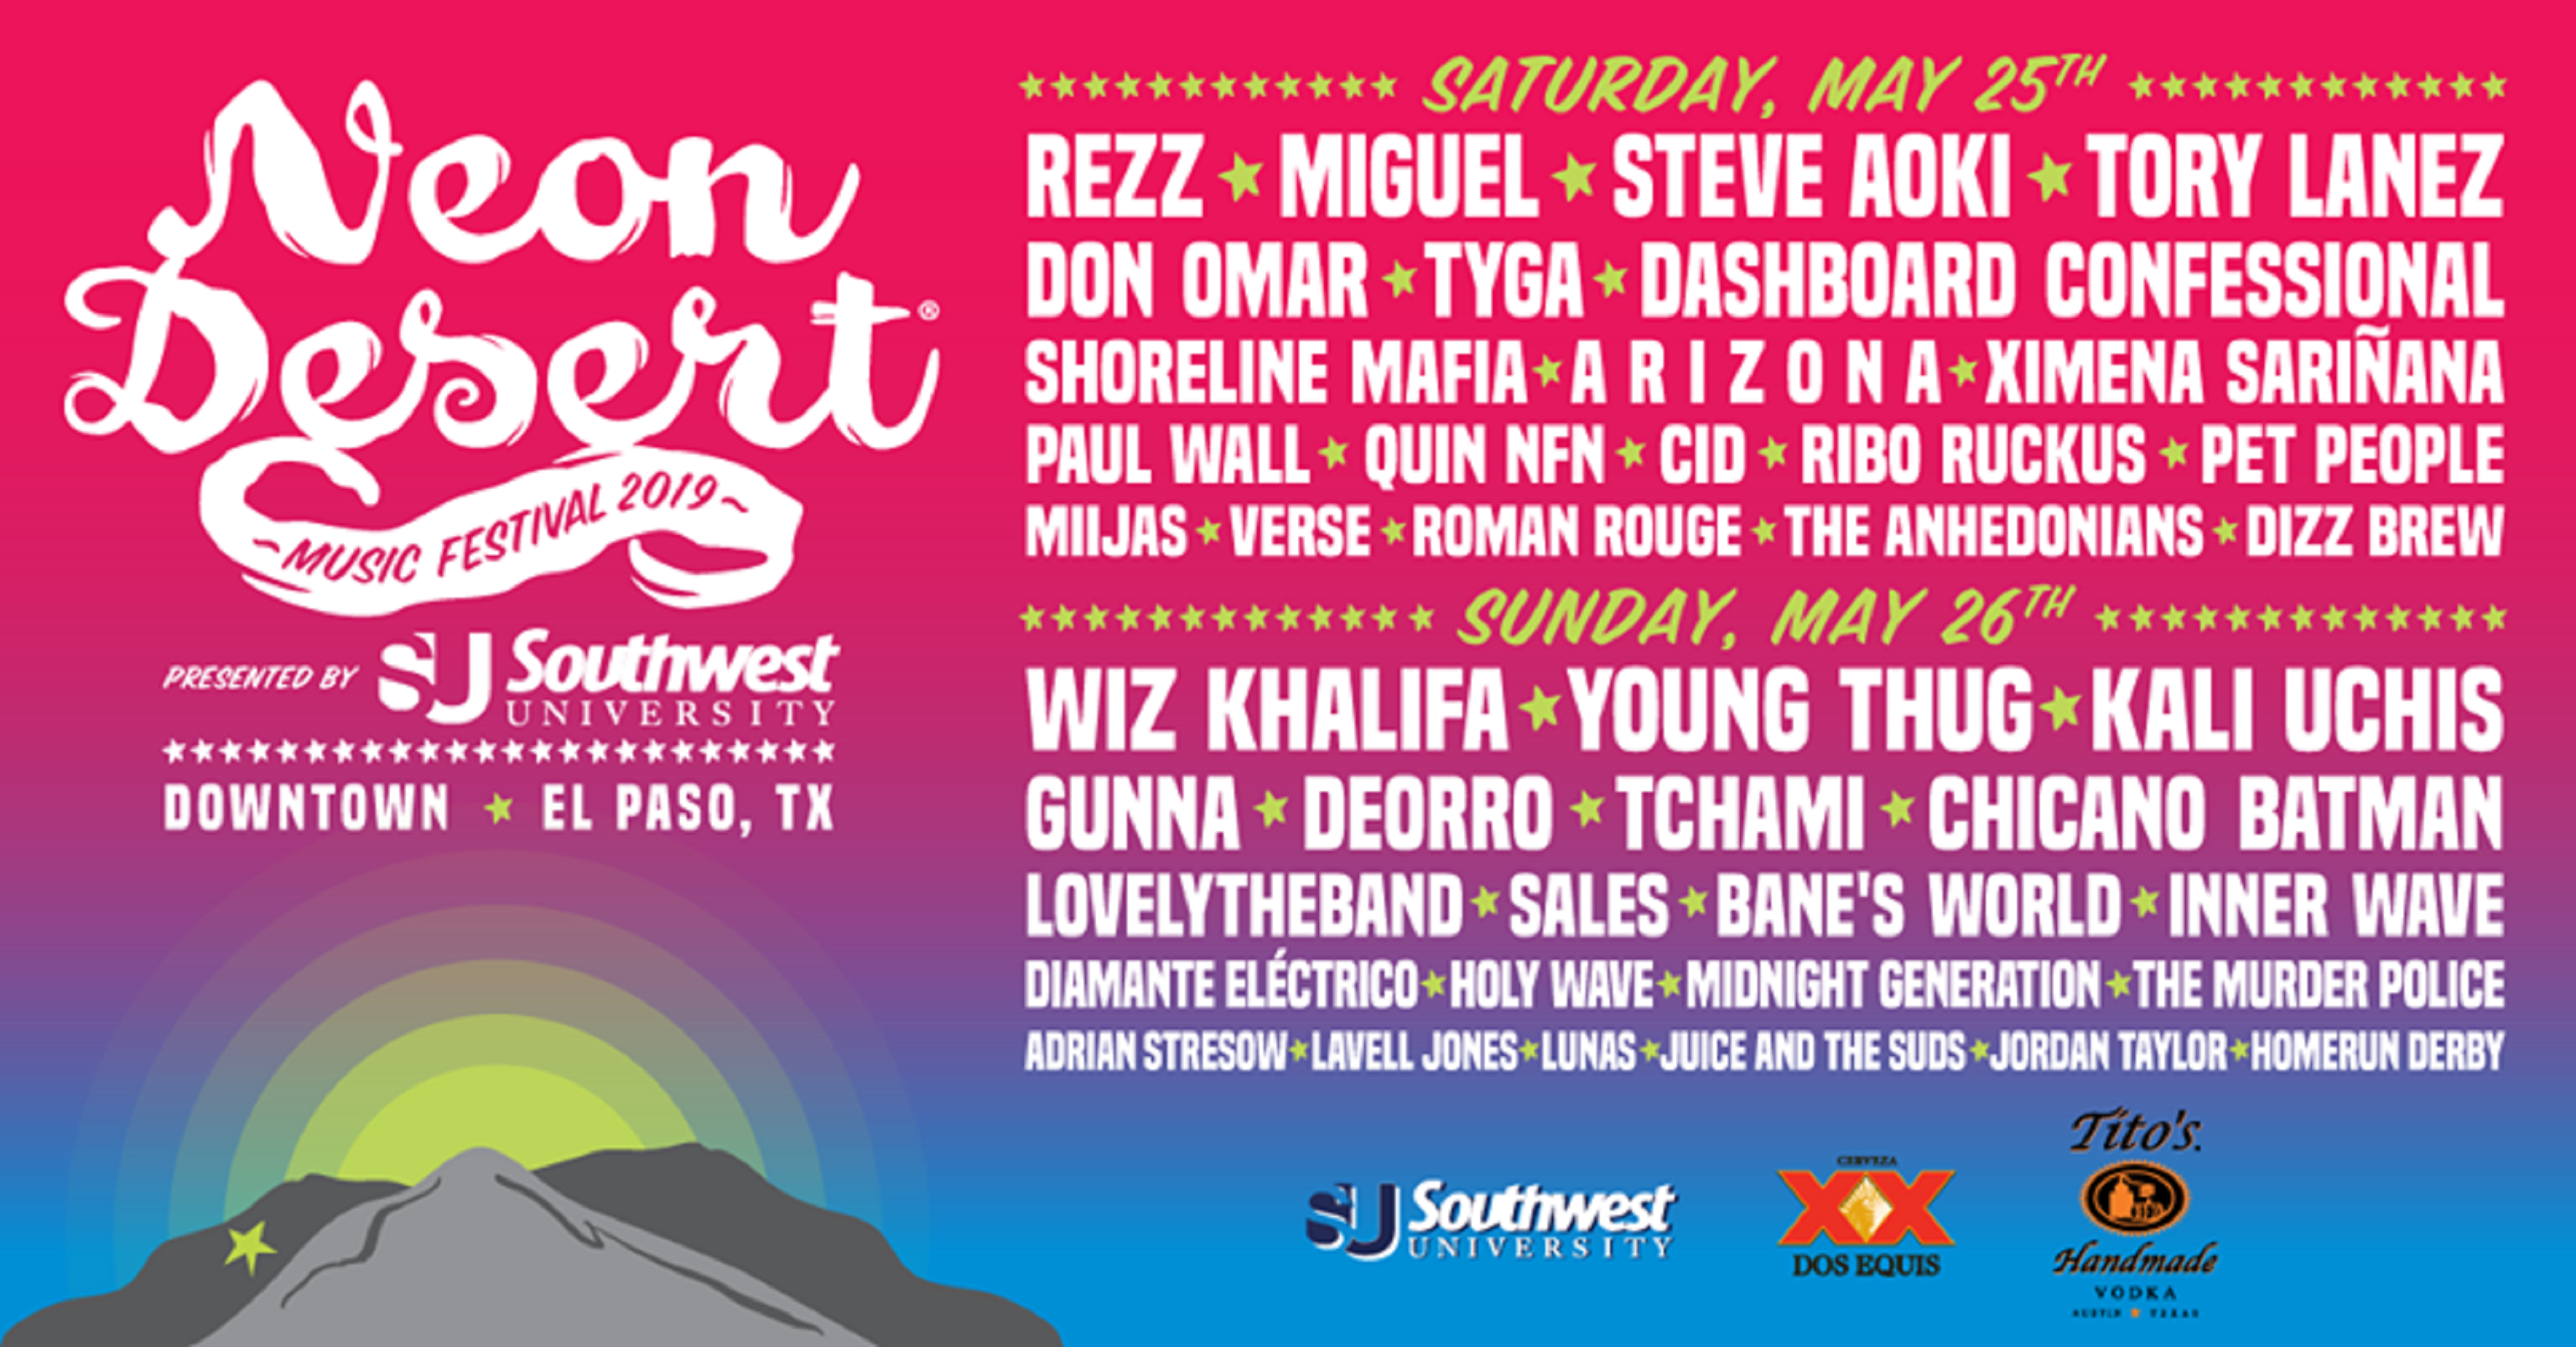 Neon Desert Music Festival Announces Full Lineup